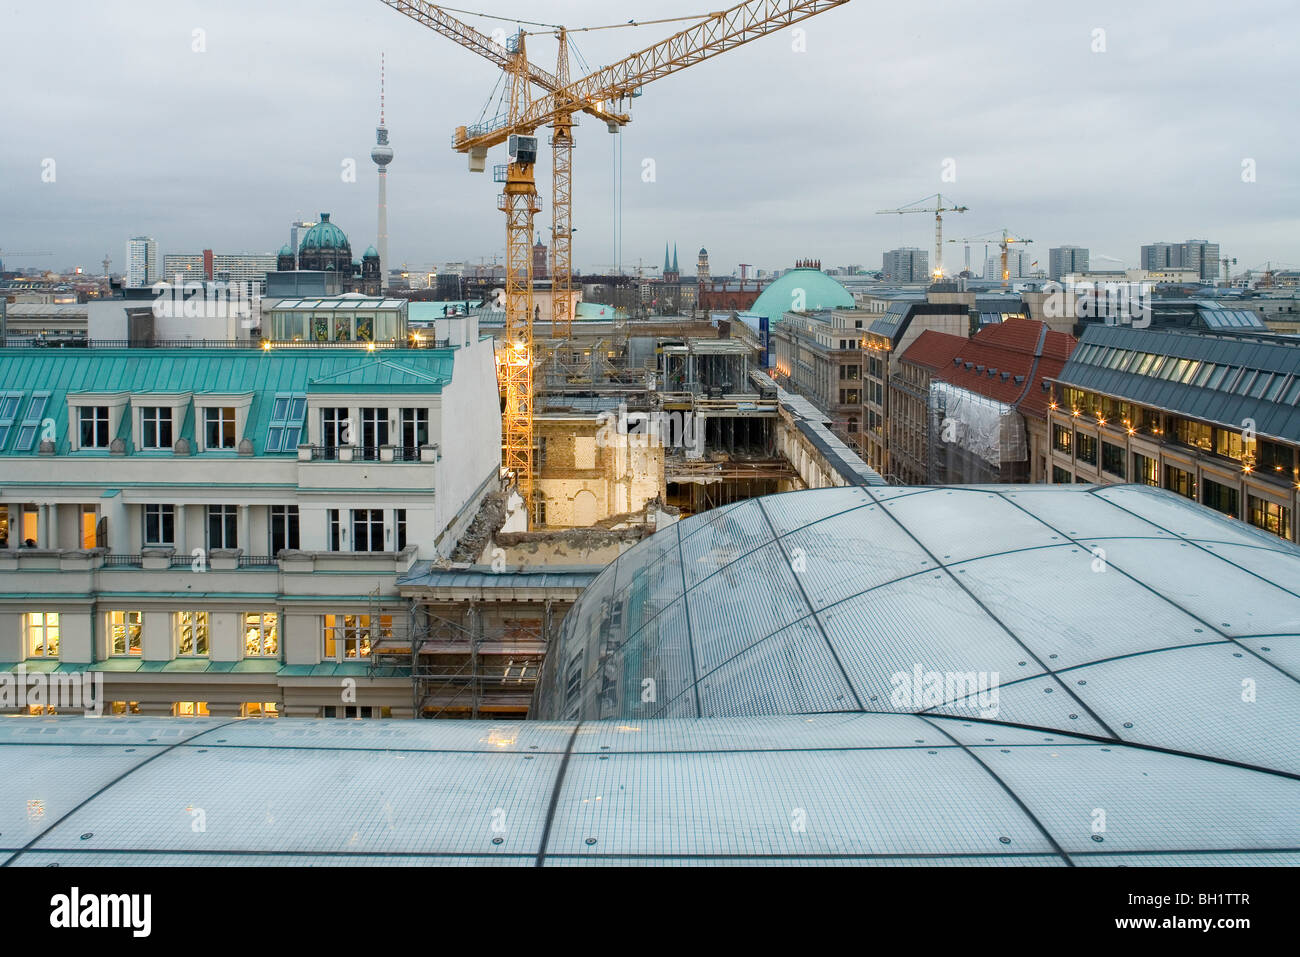 the roof of the Zentrale Giro, und Sparkassenverband, Berlin, Savings and Loan Association head office, Berlin - Stock Image